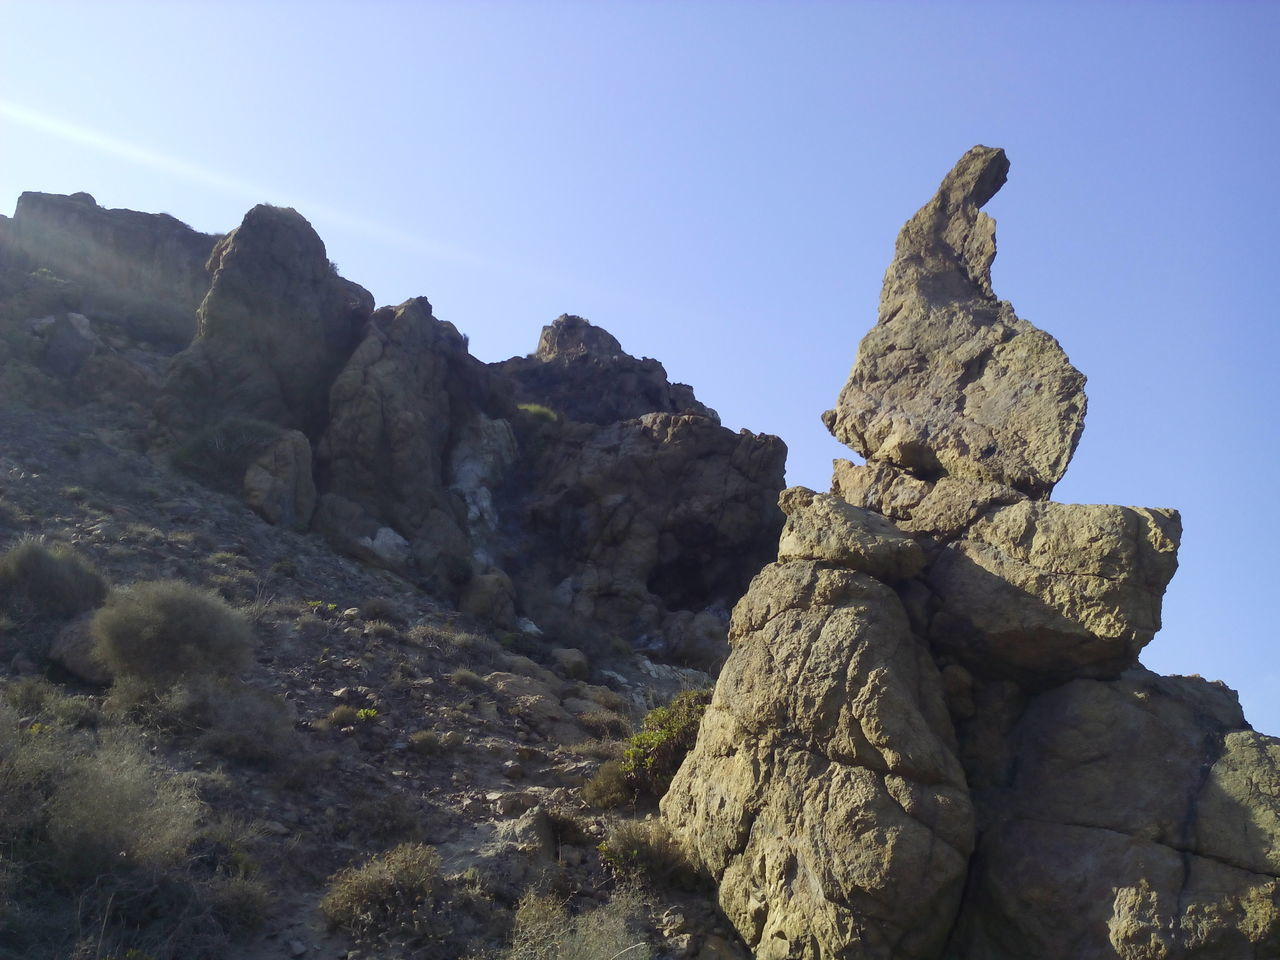 This is a image for my website: http://www.locutortv.es/locutores_chinos_chinese_voice_over.htm and http://www.locutortv.es/locutores_alemanes_german_voice_over.htm Andalucía Andalucía Nature Mountain, Expedition , Holiday, Nature , Sightseeing , Forest, Views , Road, Sky SPAIN